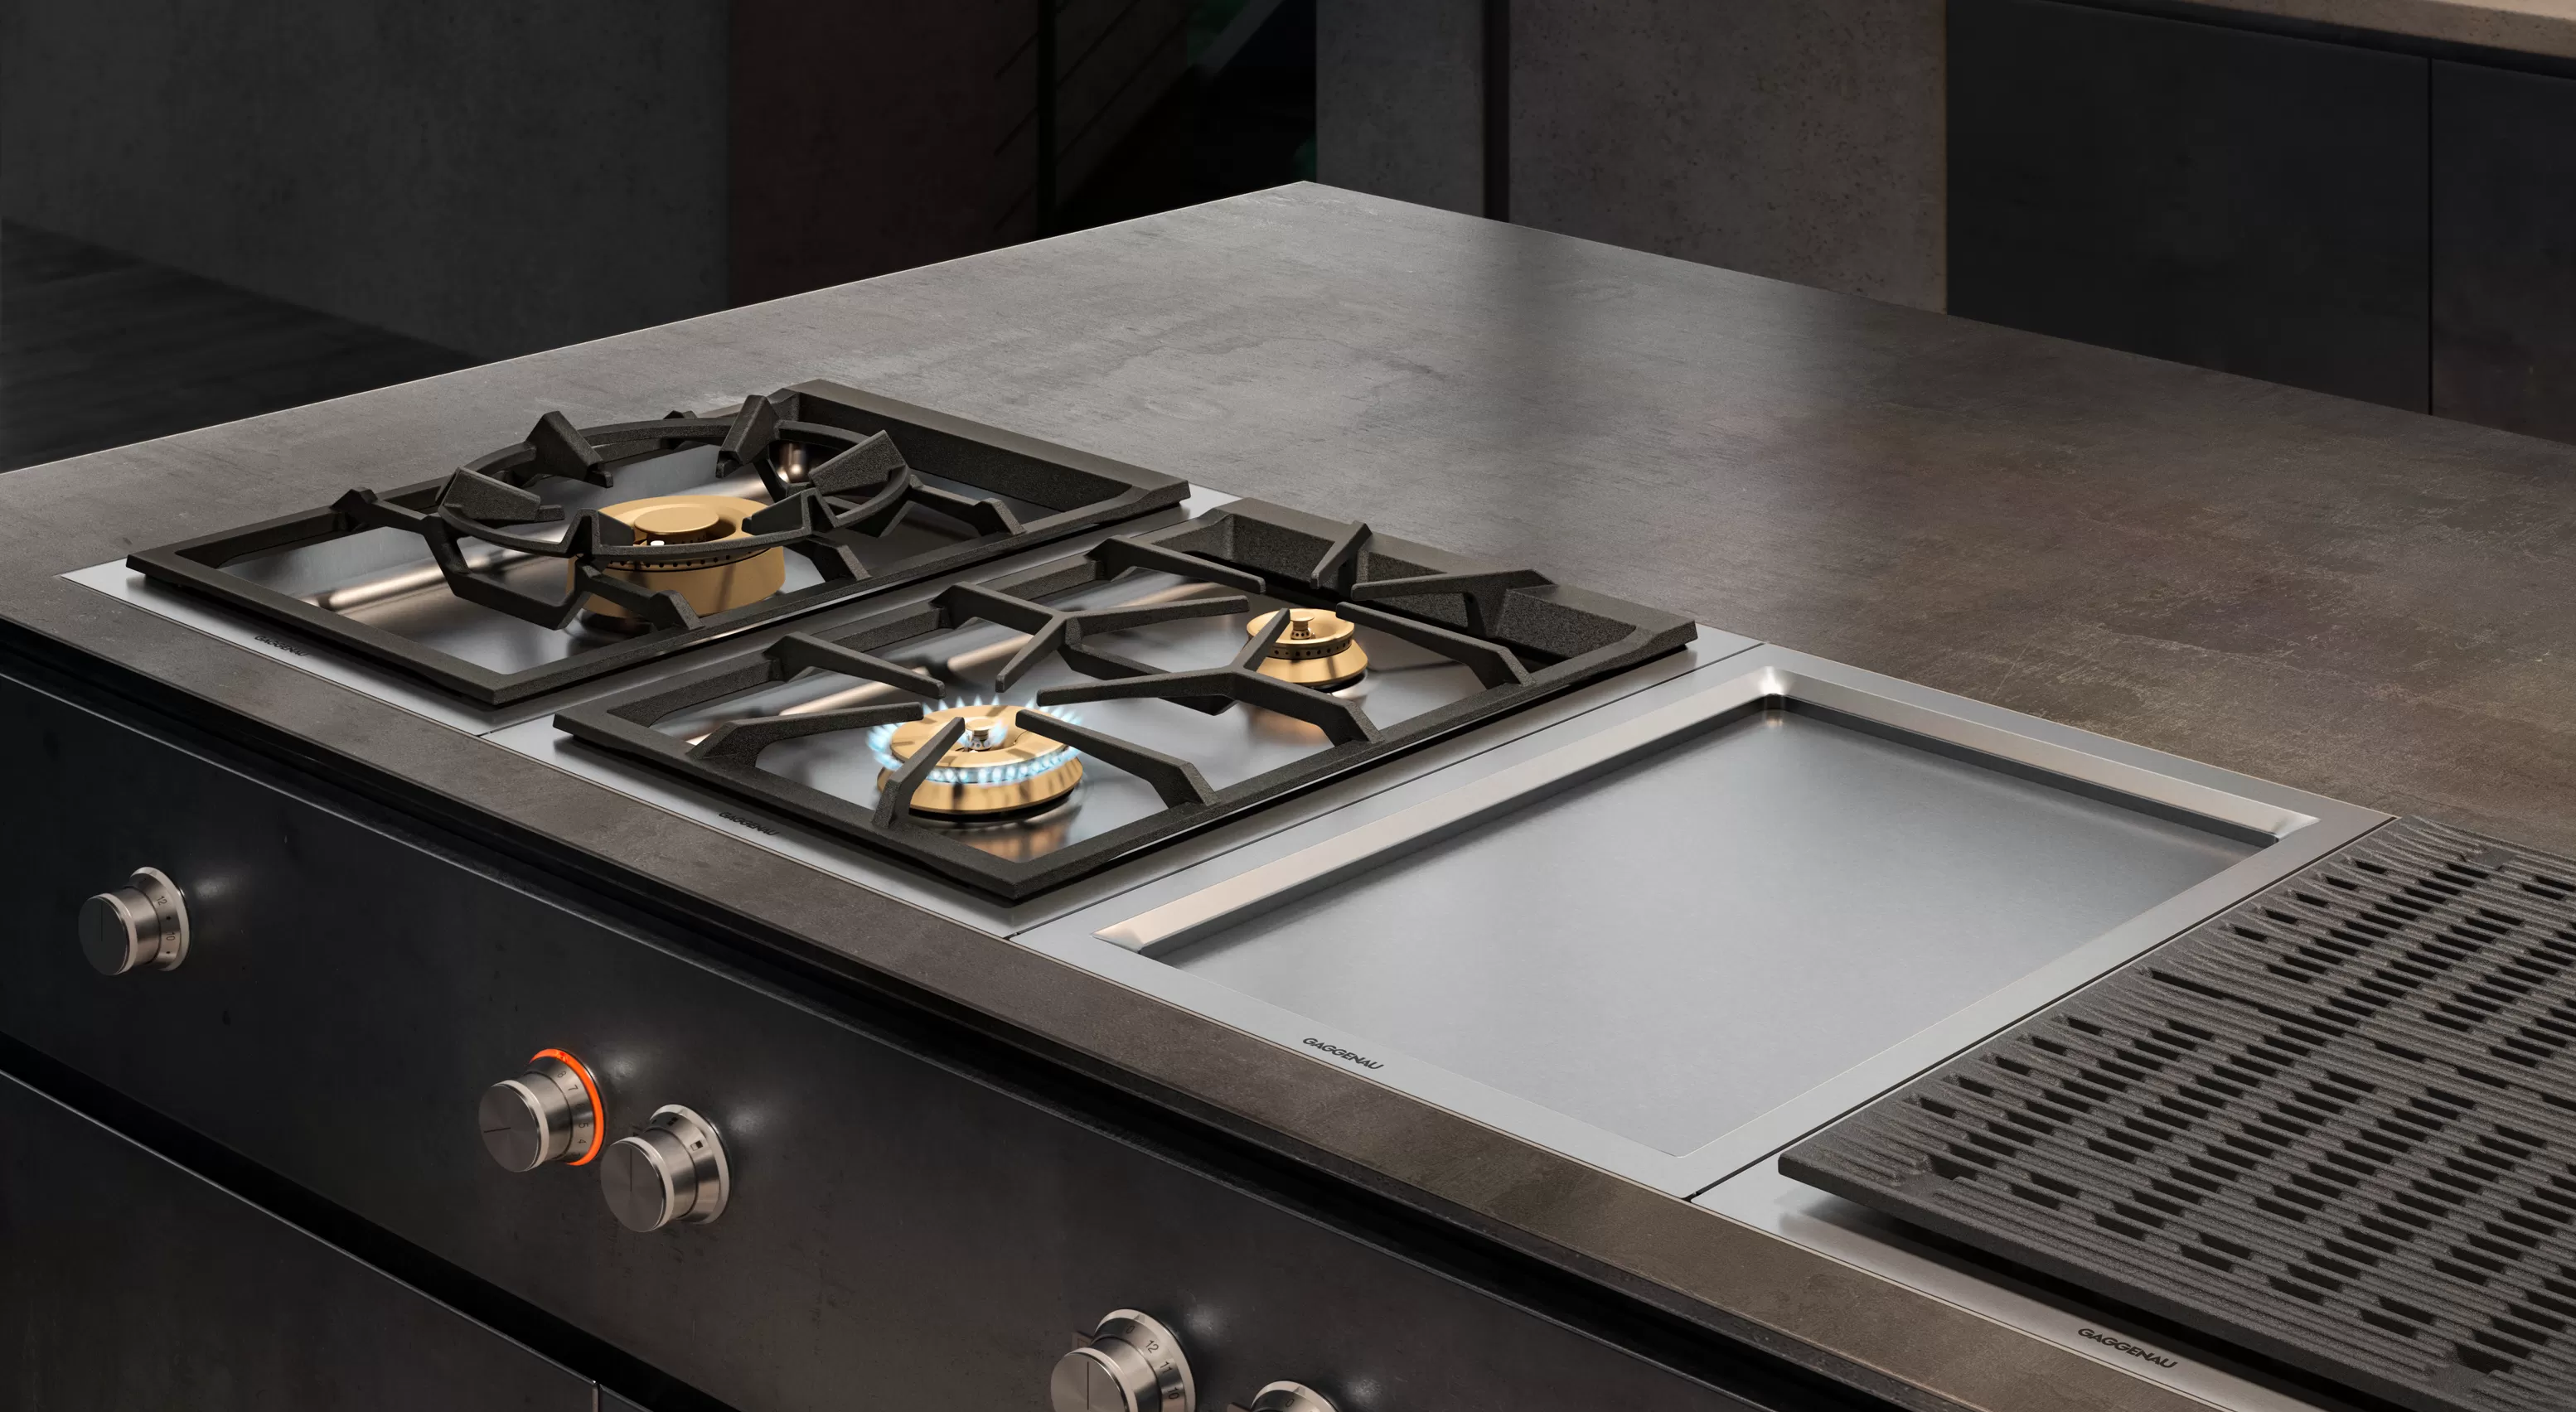 The Gas Cooktop 400 series